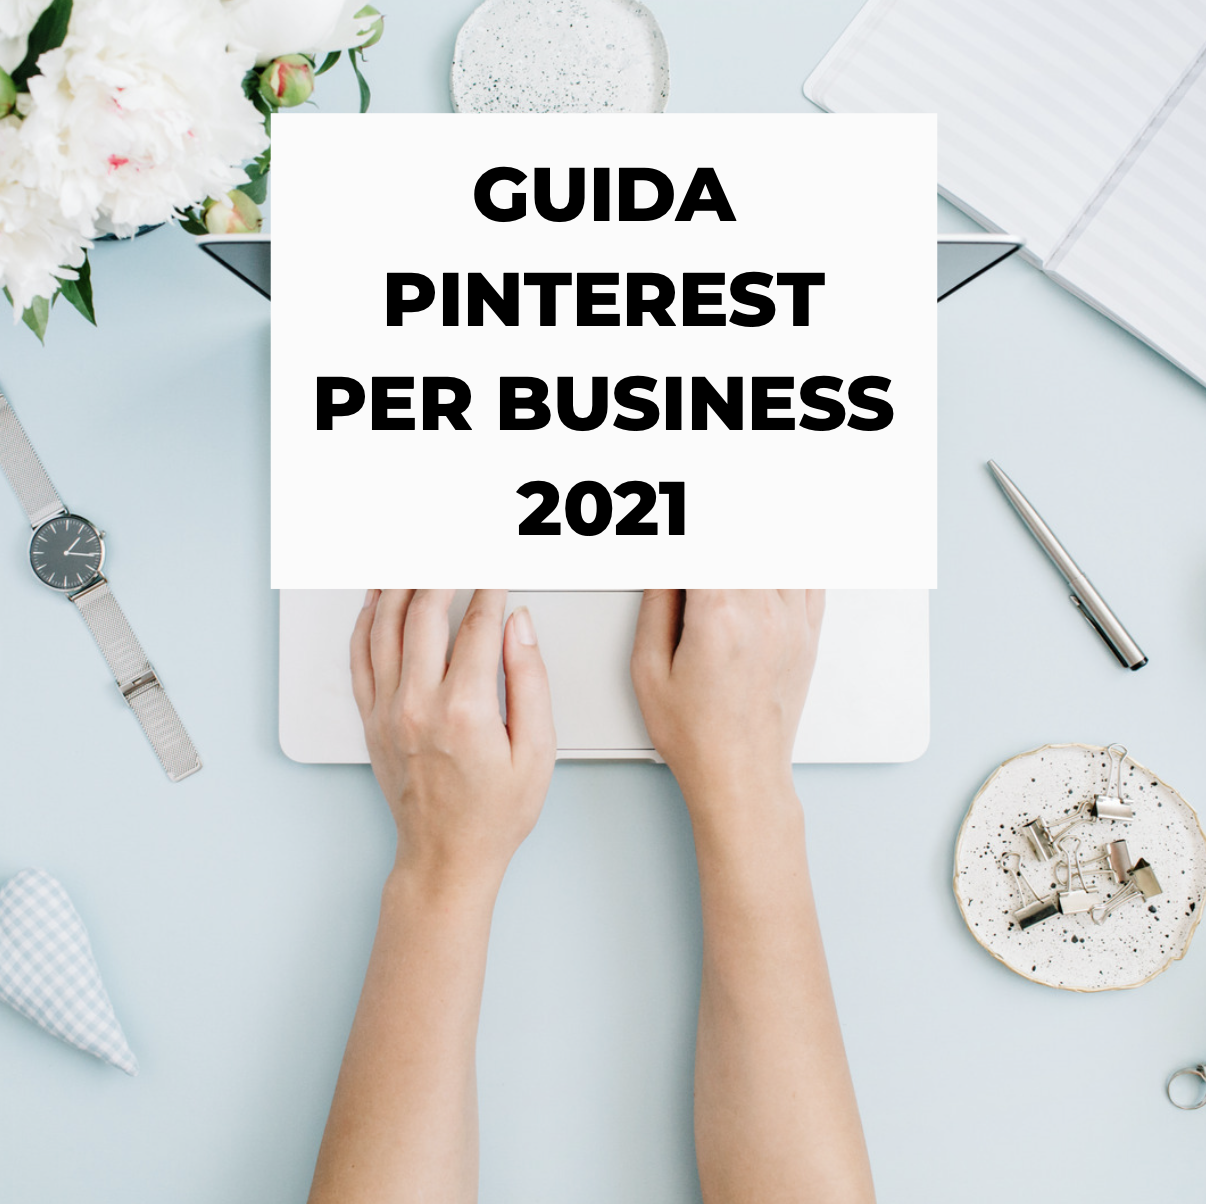 Guida Pinterest per Business 2021